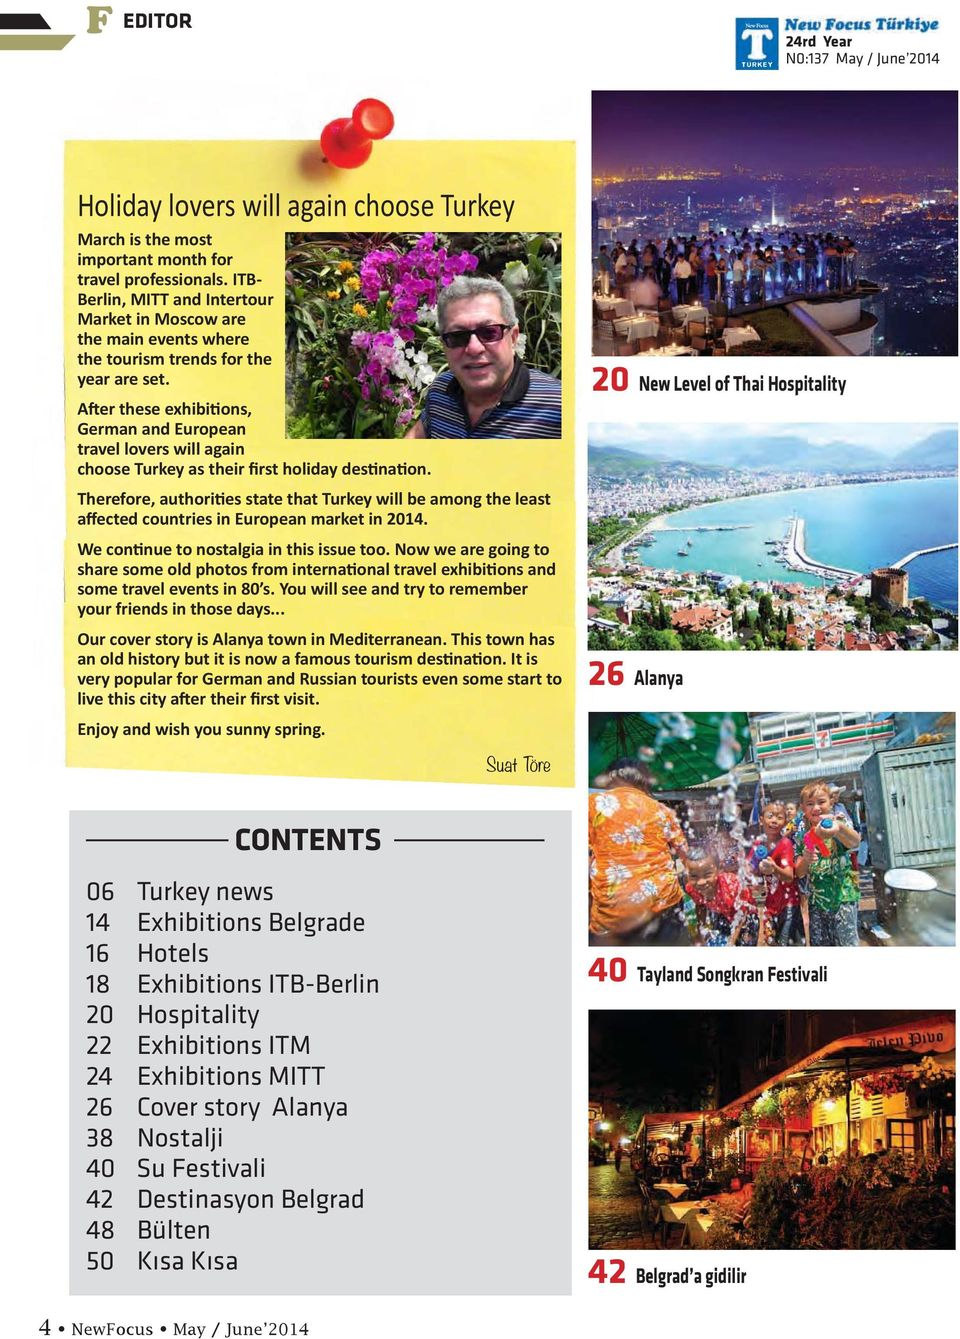 .. Our cover story is Alanya town in Mediterranean. This town has very popular for German and Russian tourists even some start to Enjoy and wish you sunny spring.